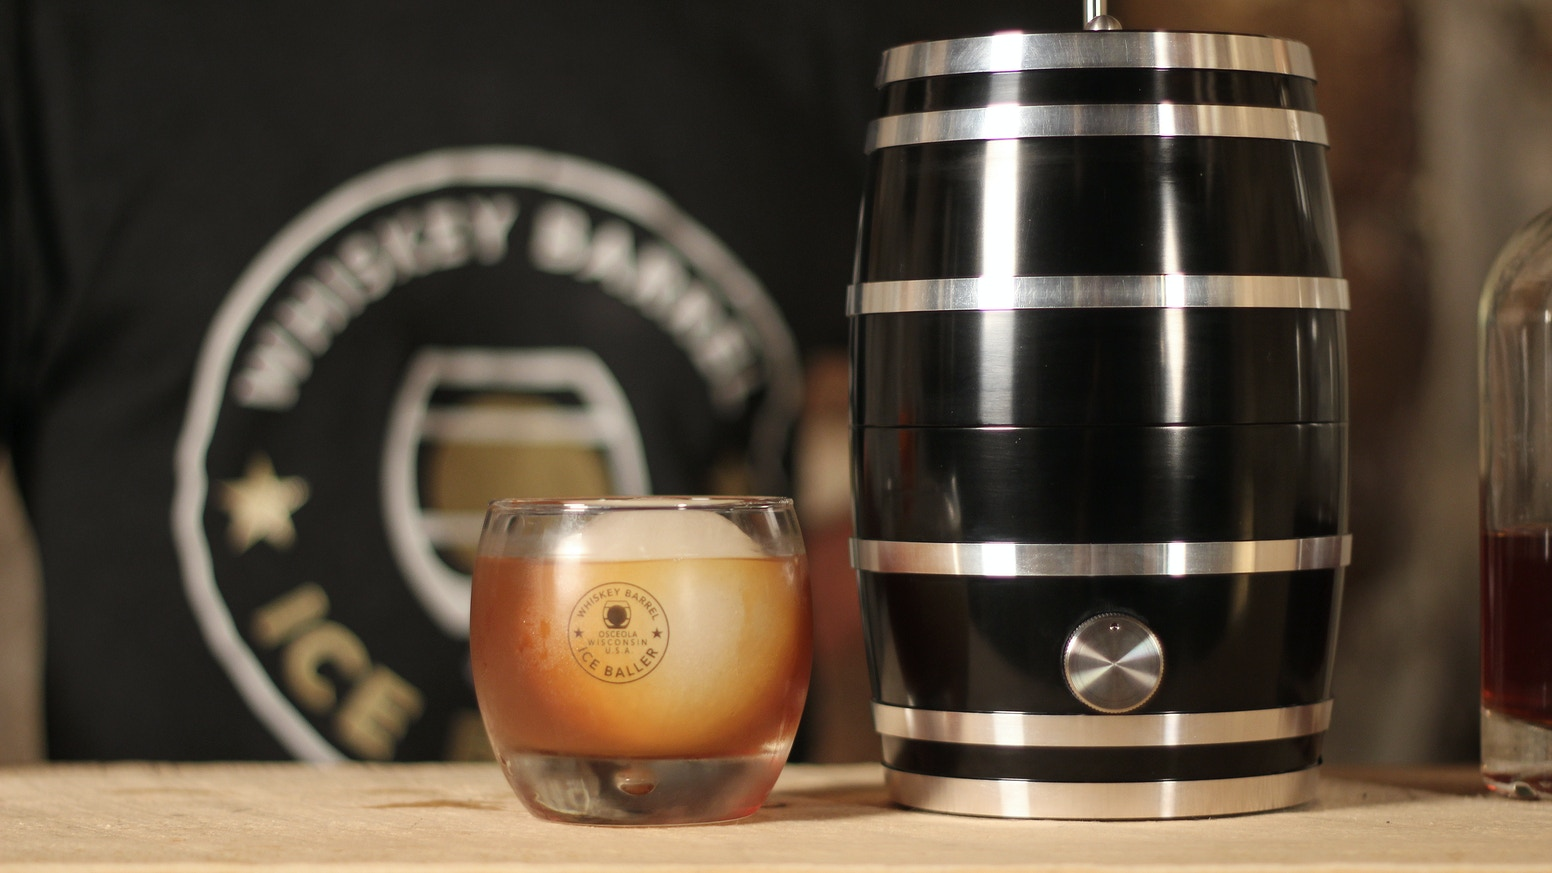 Our whiskey ice ball press is the finest, most fully featured ice ball press in the world. Take your whiskey to the next level!